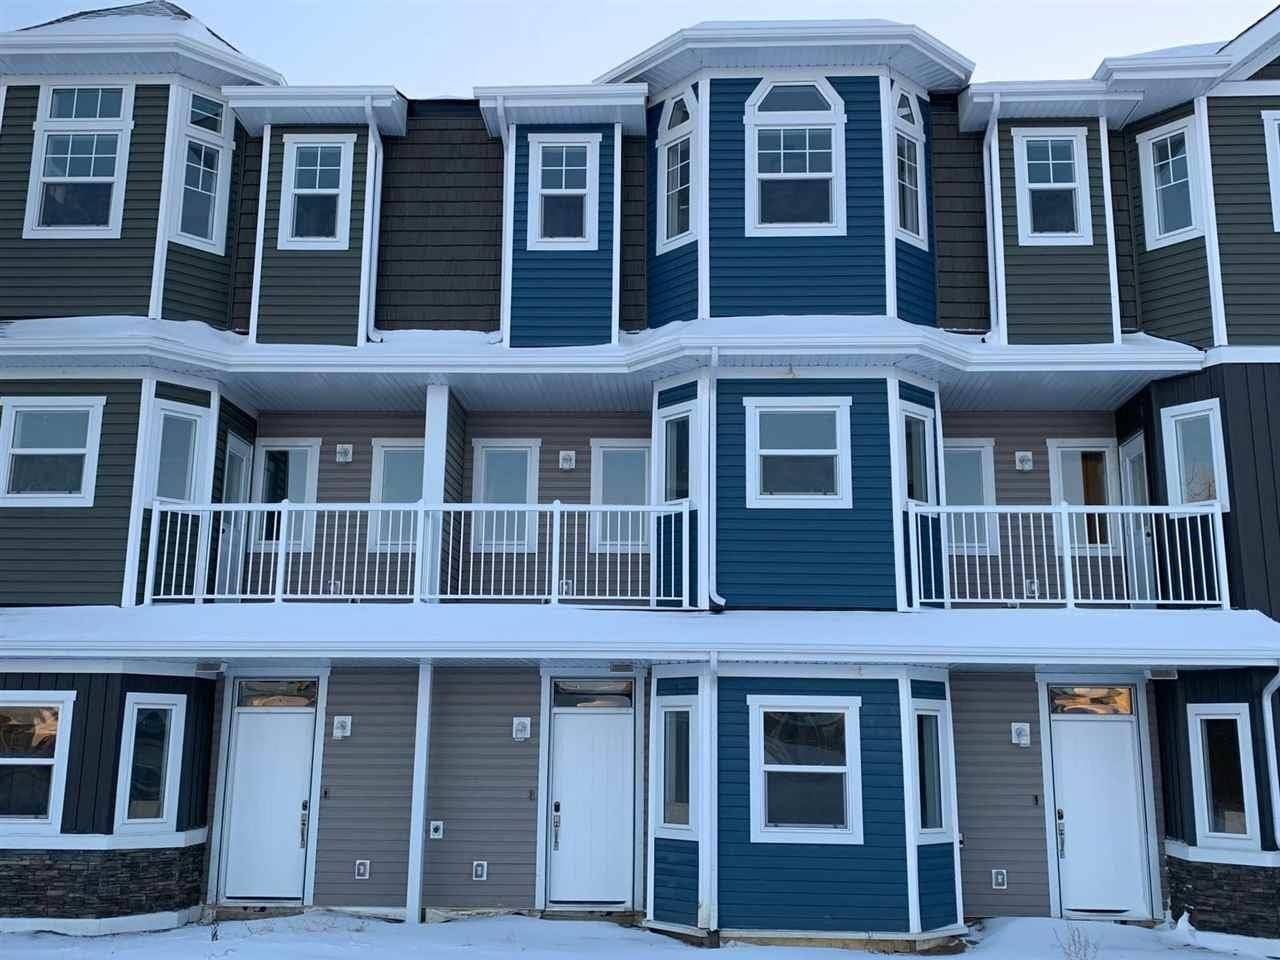 Townhouse for sale at 150 Everitt Dr N Unit 23 St. Albert Alberta - MLS: E4176990